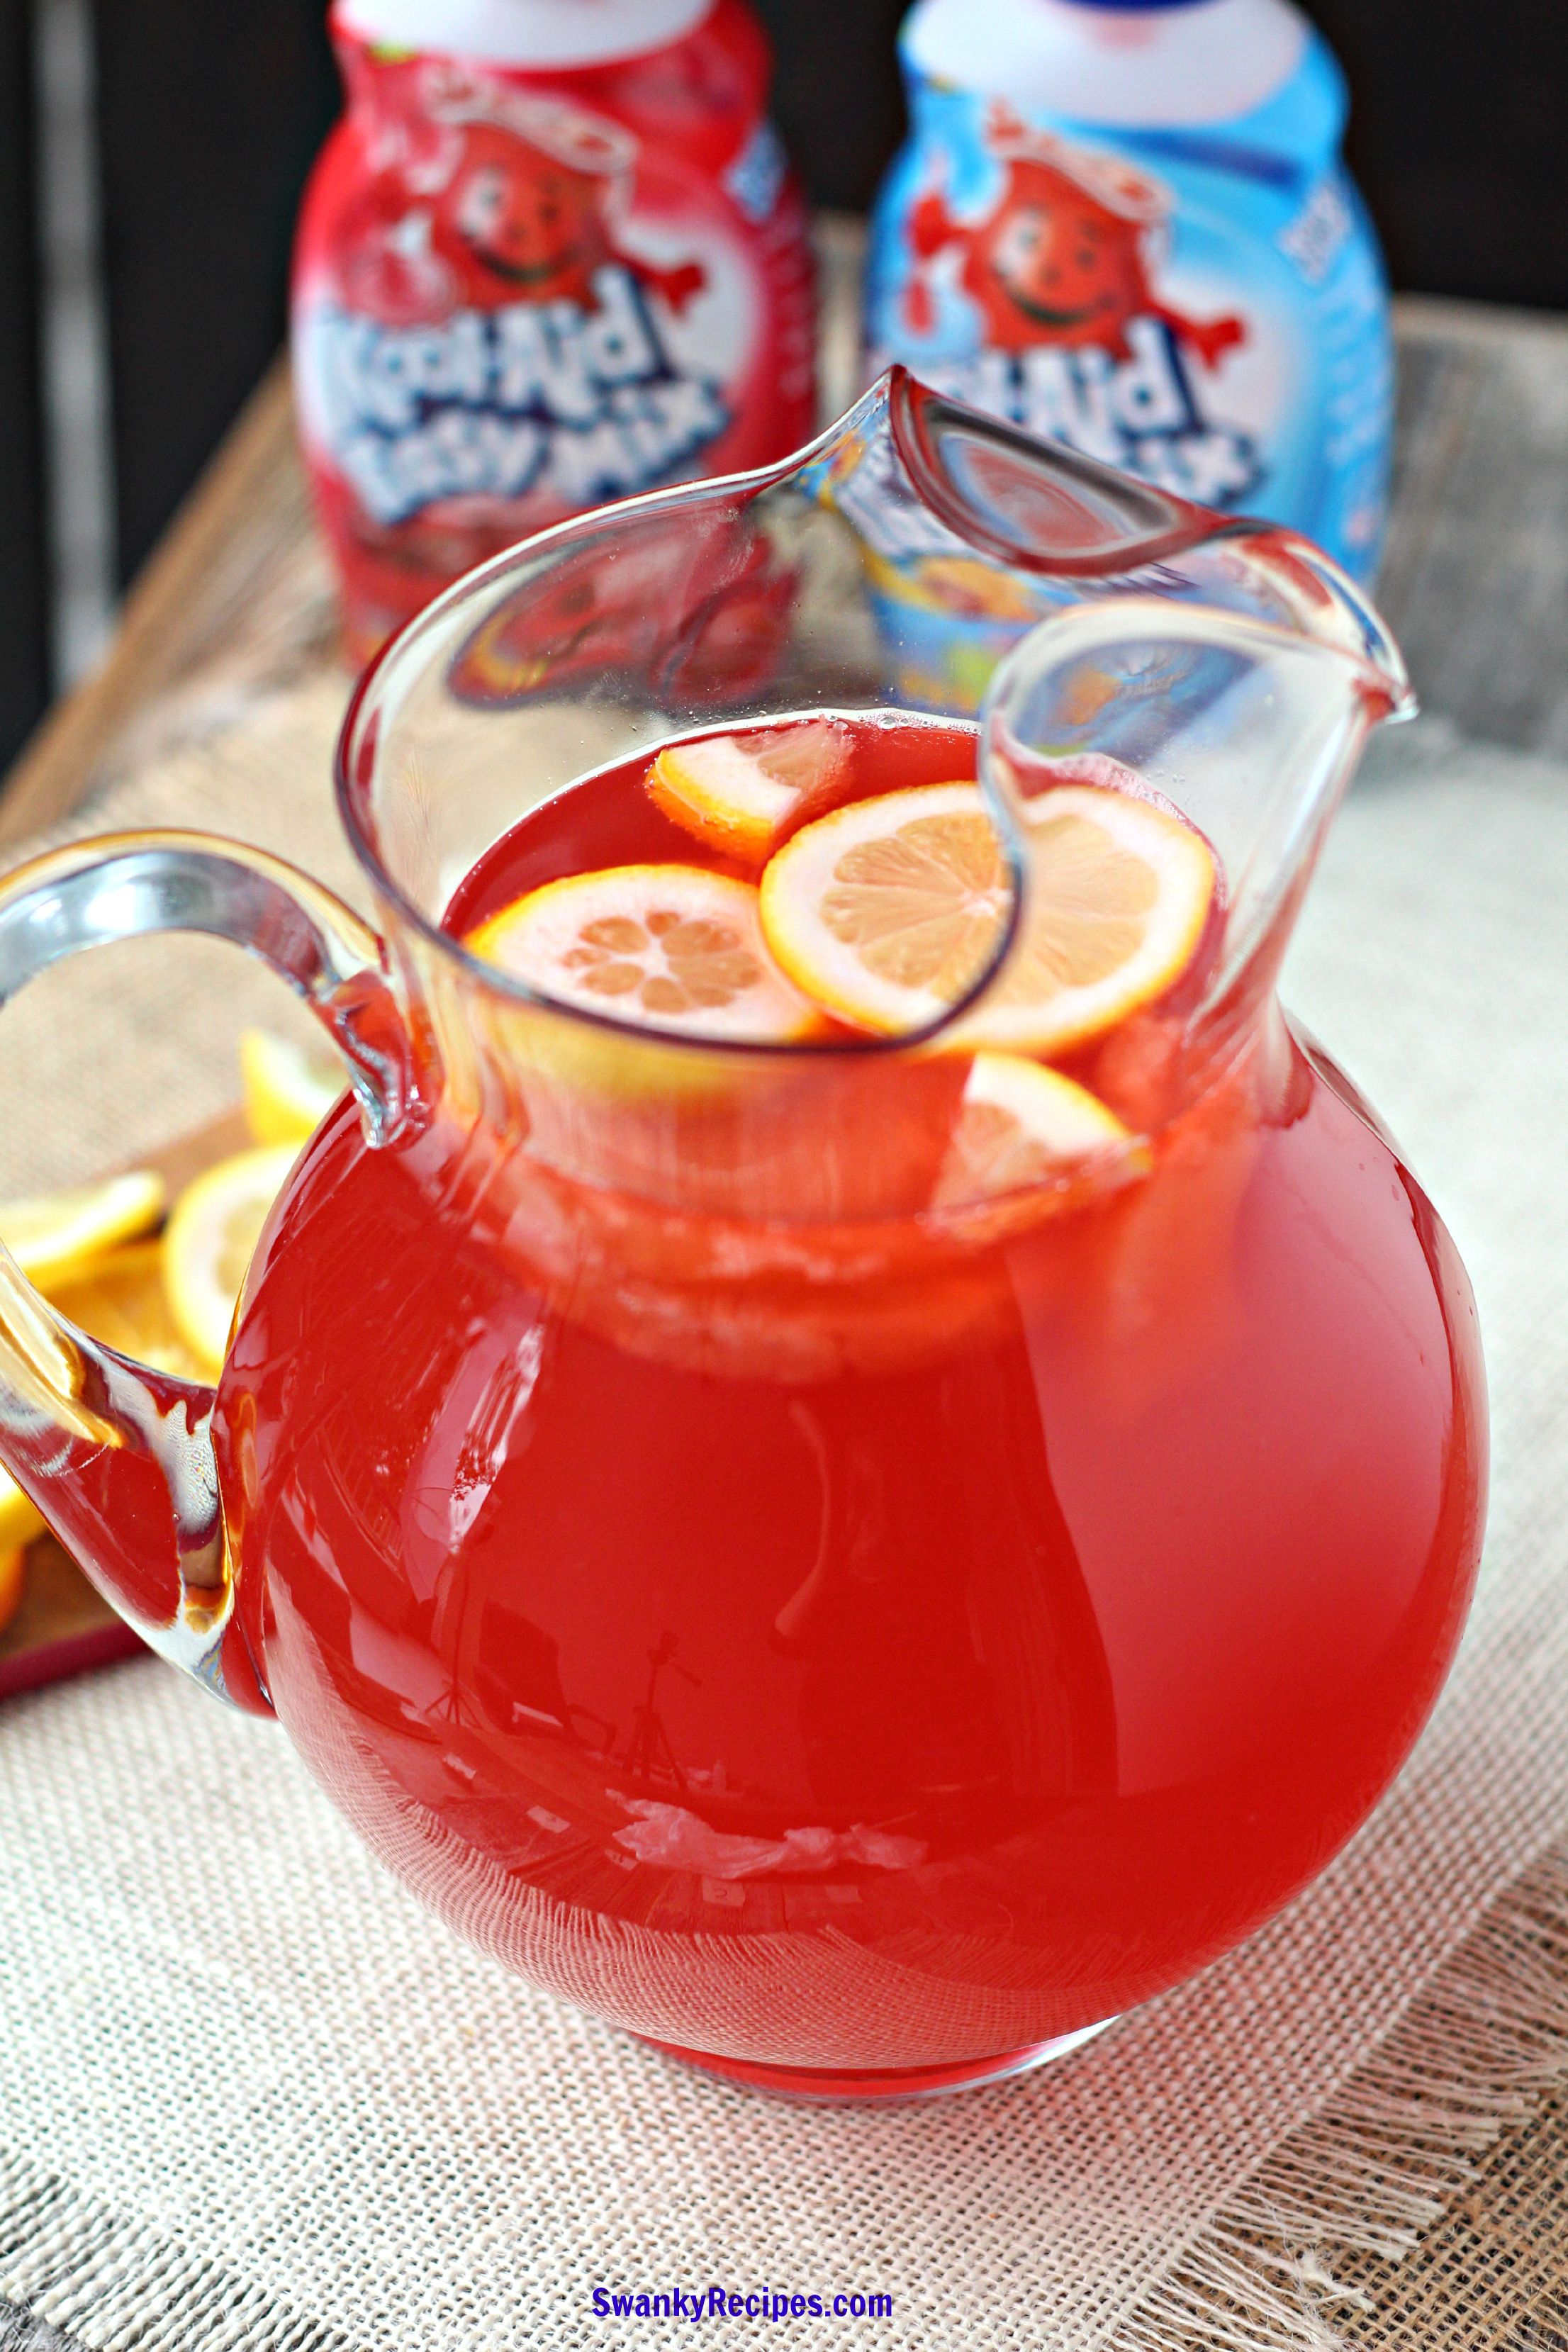 Tropical Cherry Party Punch Swanky Recipes Koolaid Punch Recipe Tropical Punch Recipe Christmas Punch Recipes